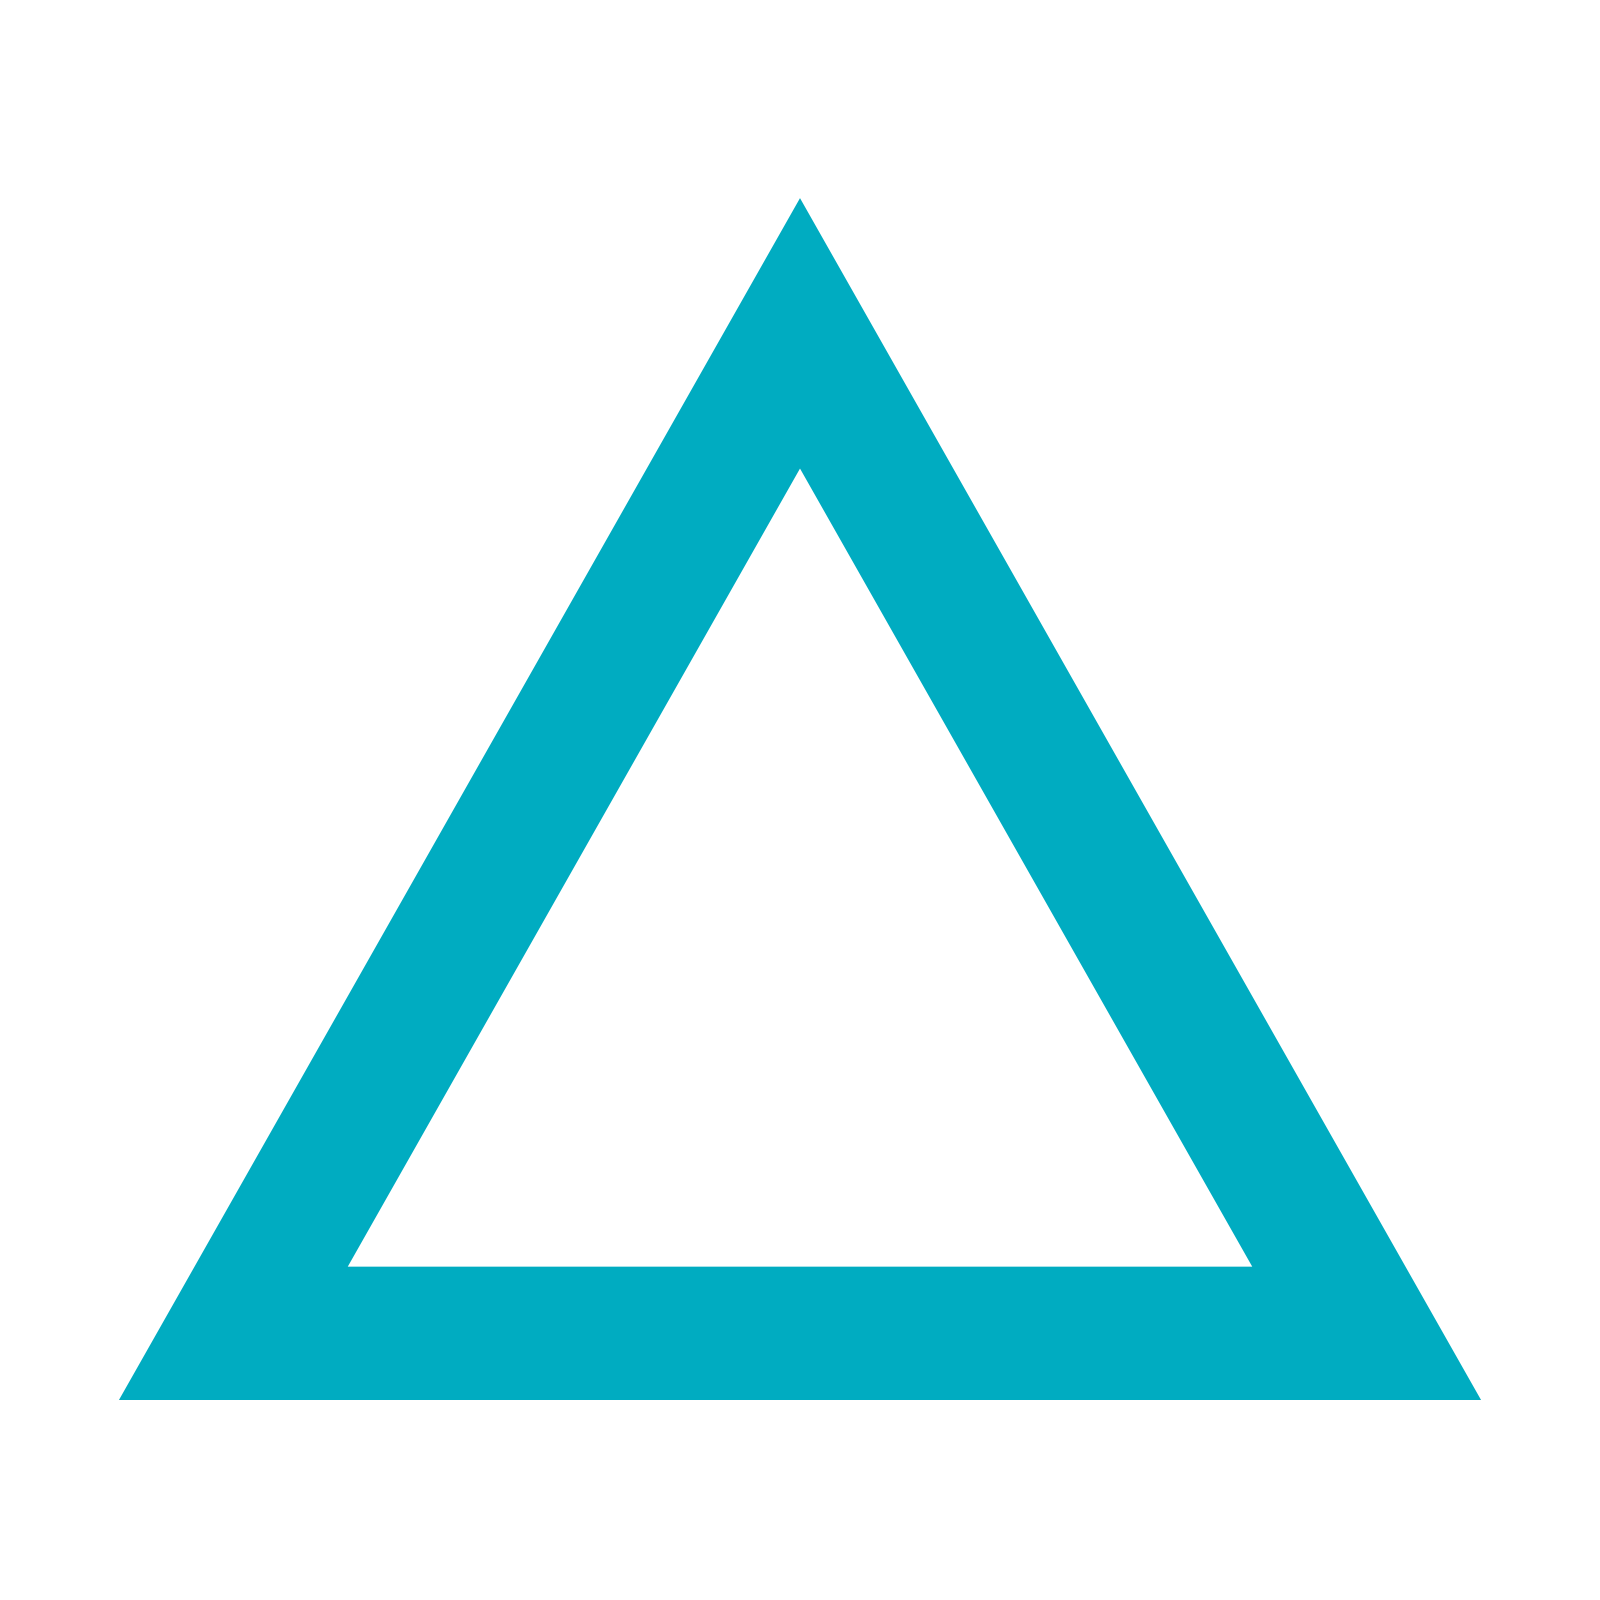 Triangle PNG - 22947